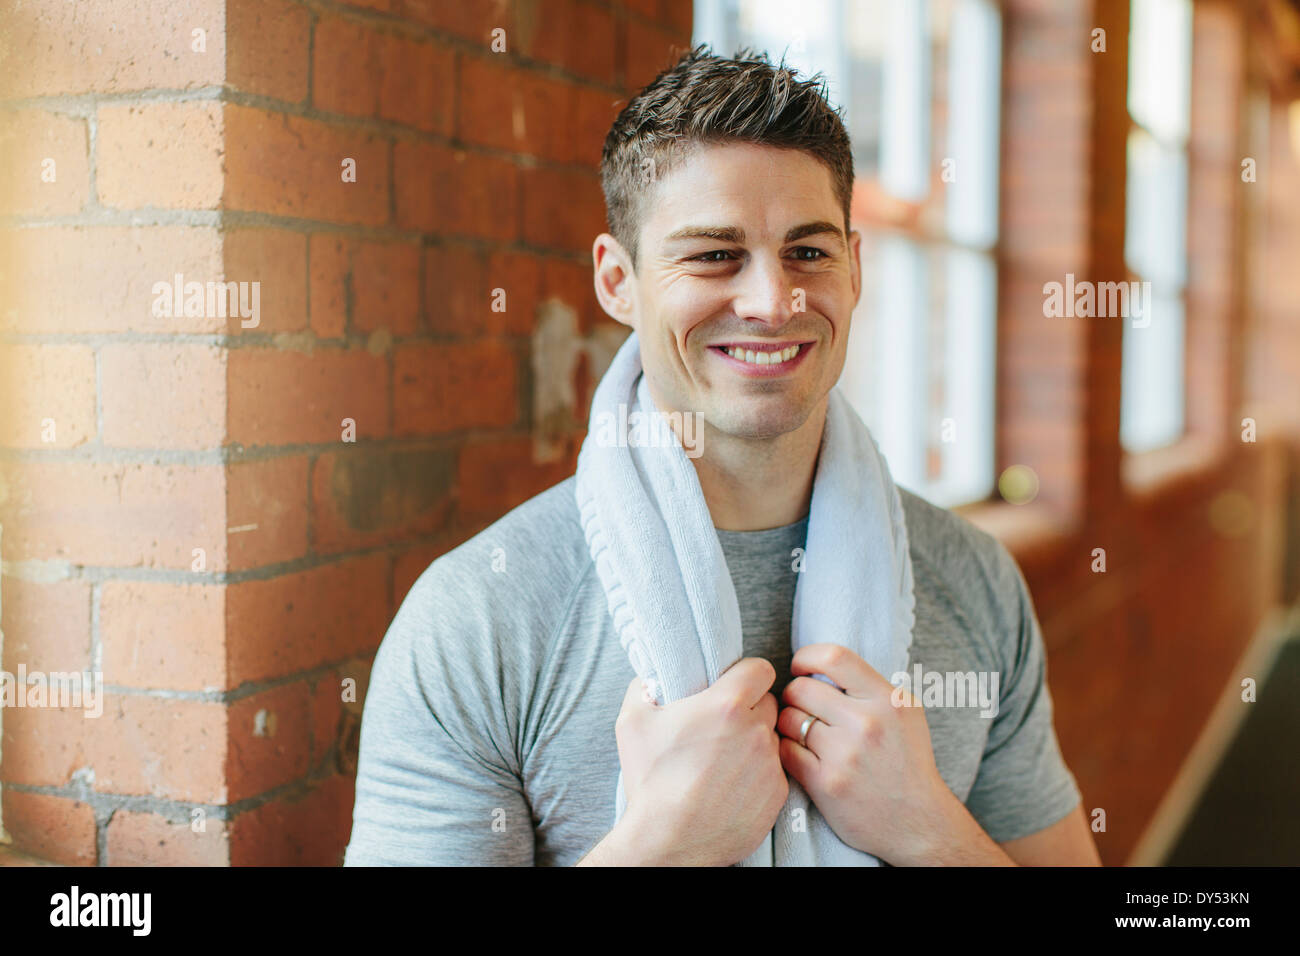 Man in gym with towel around neck - Stock Image